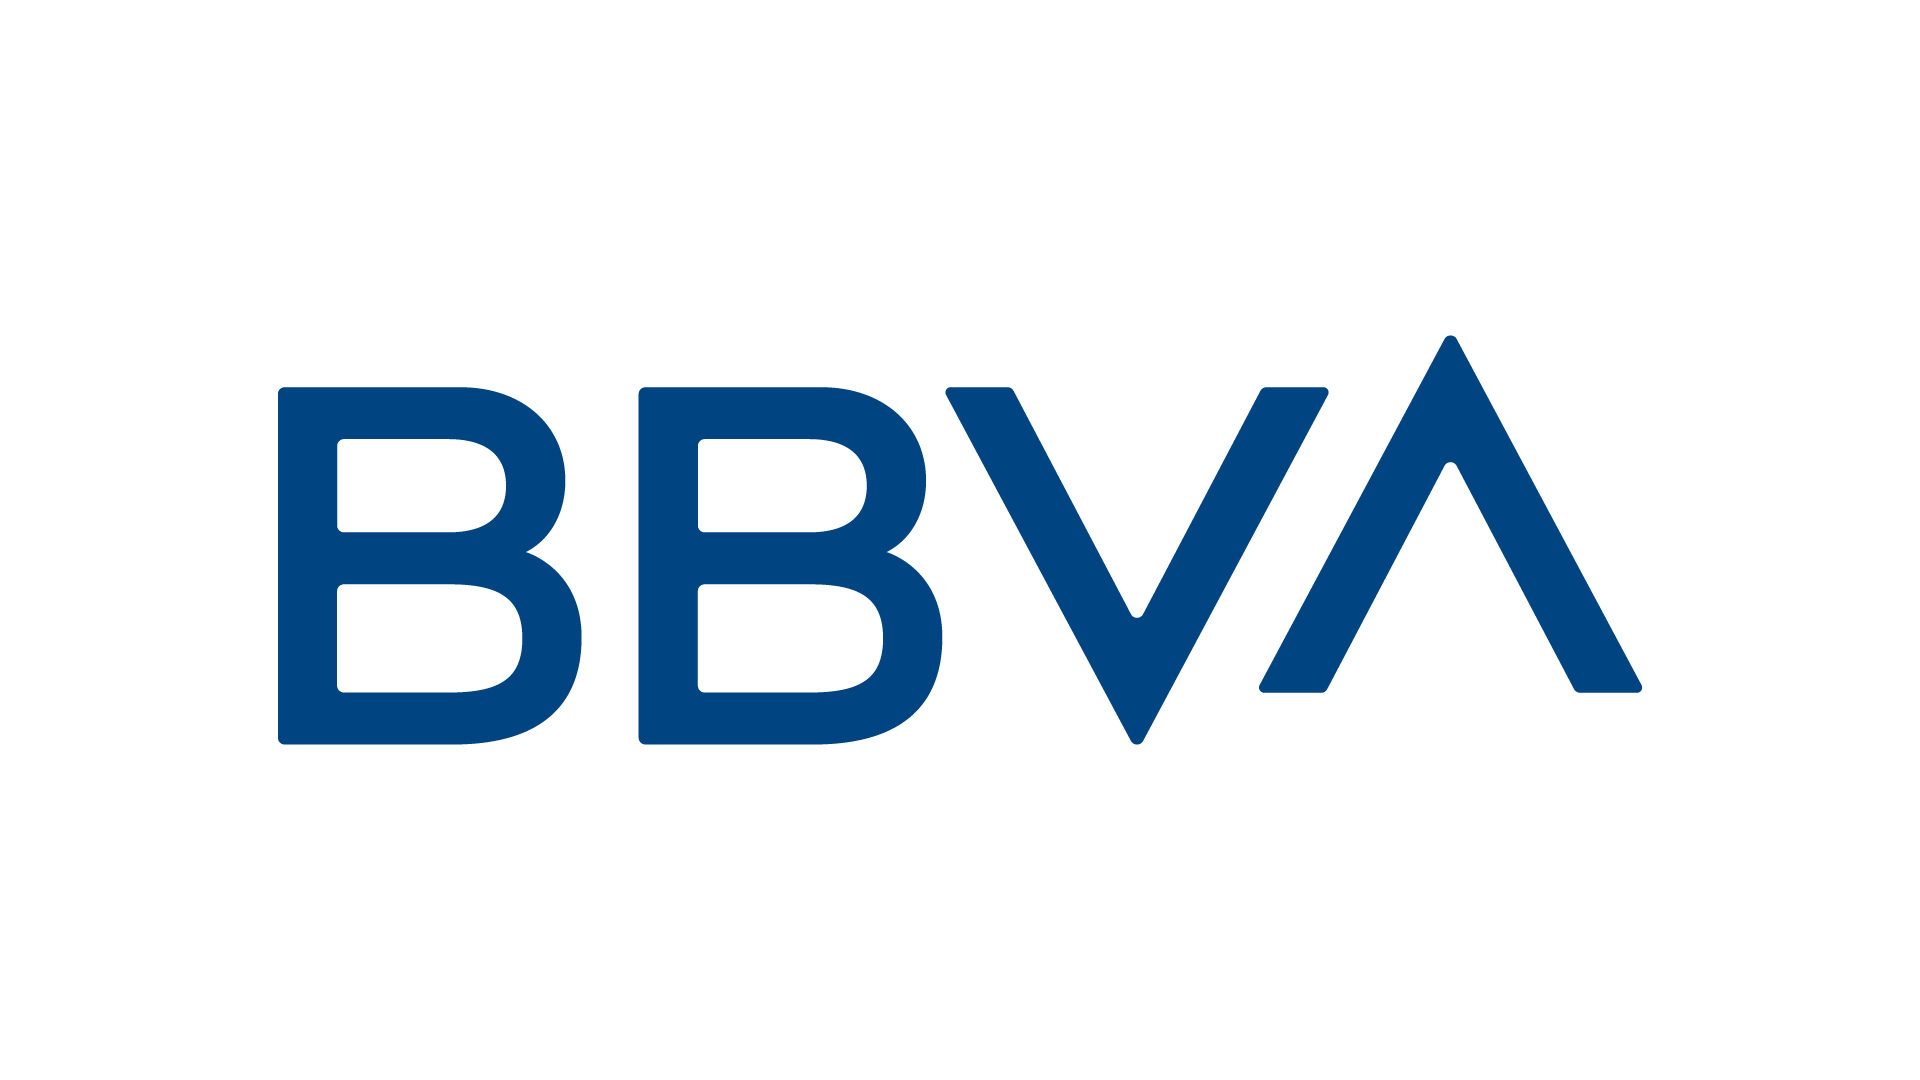 BBVA to unify its brand worldwide, changes its logo